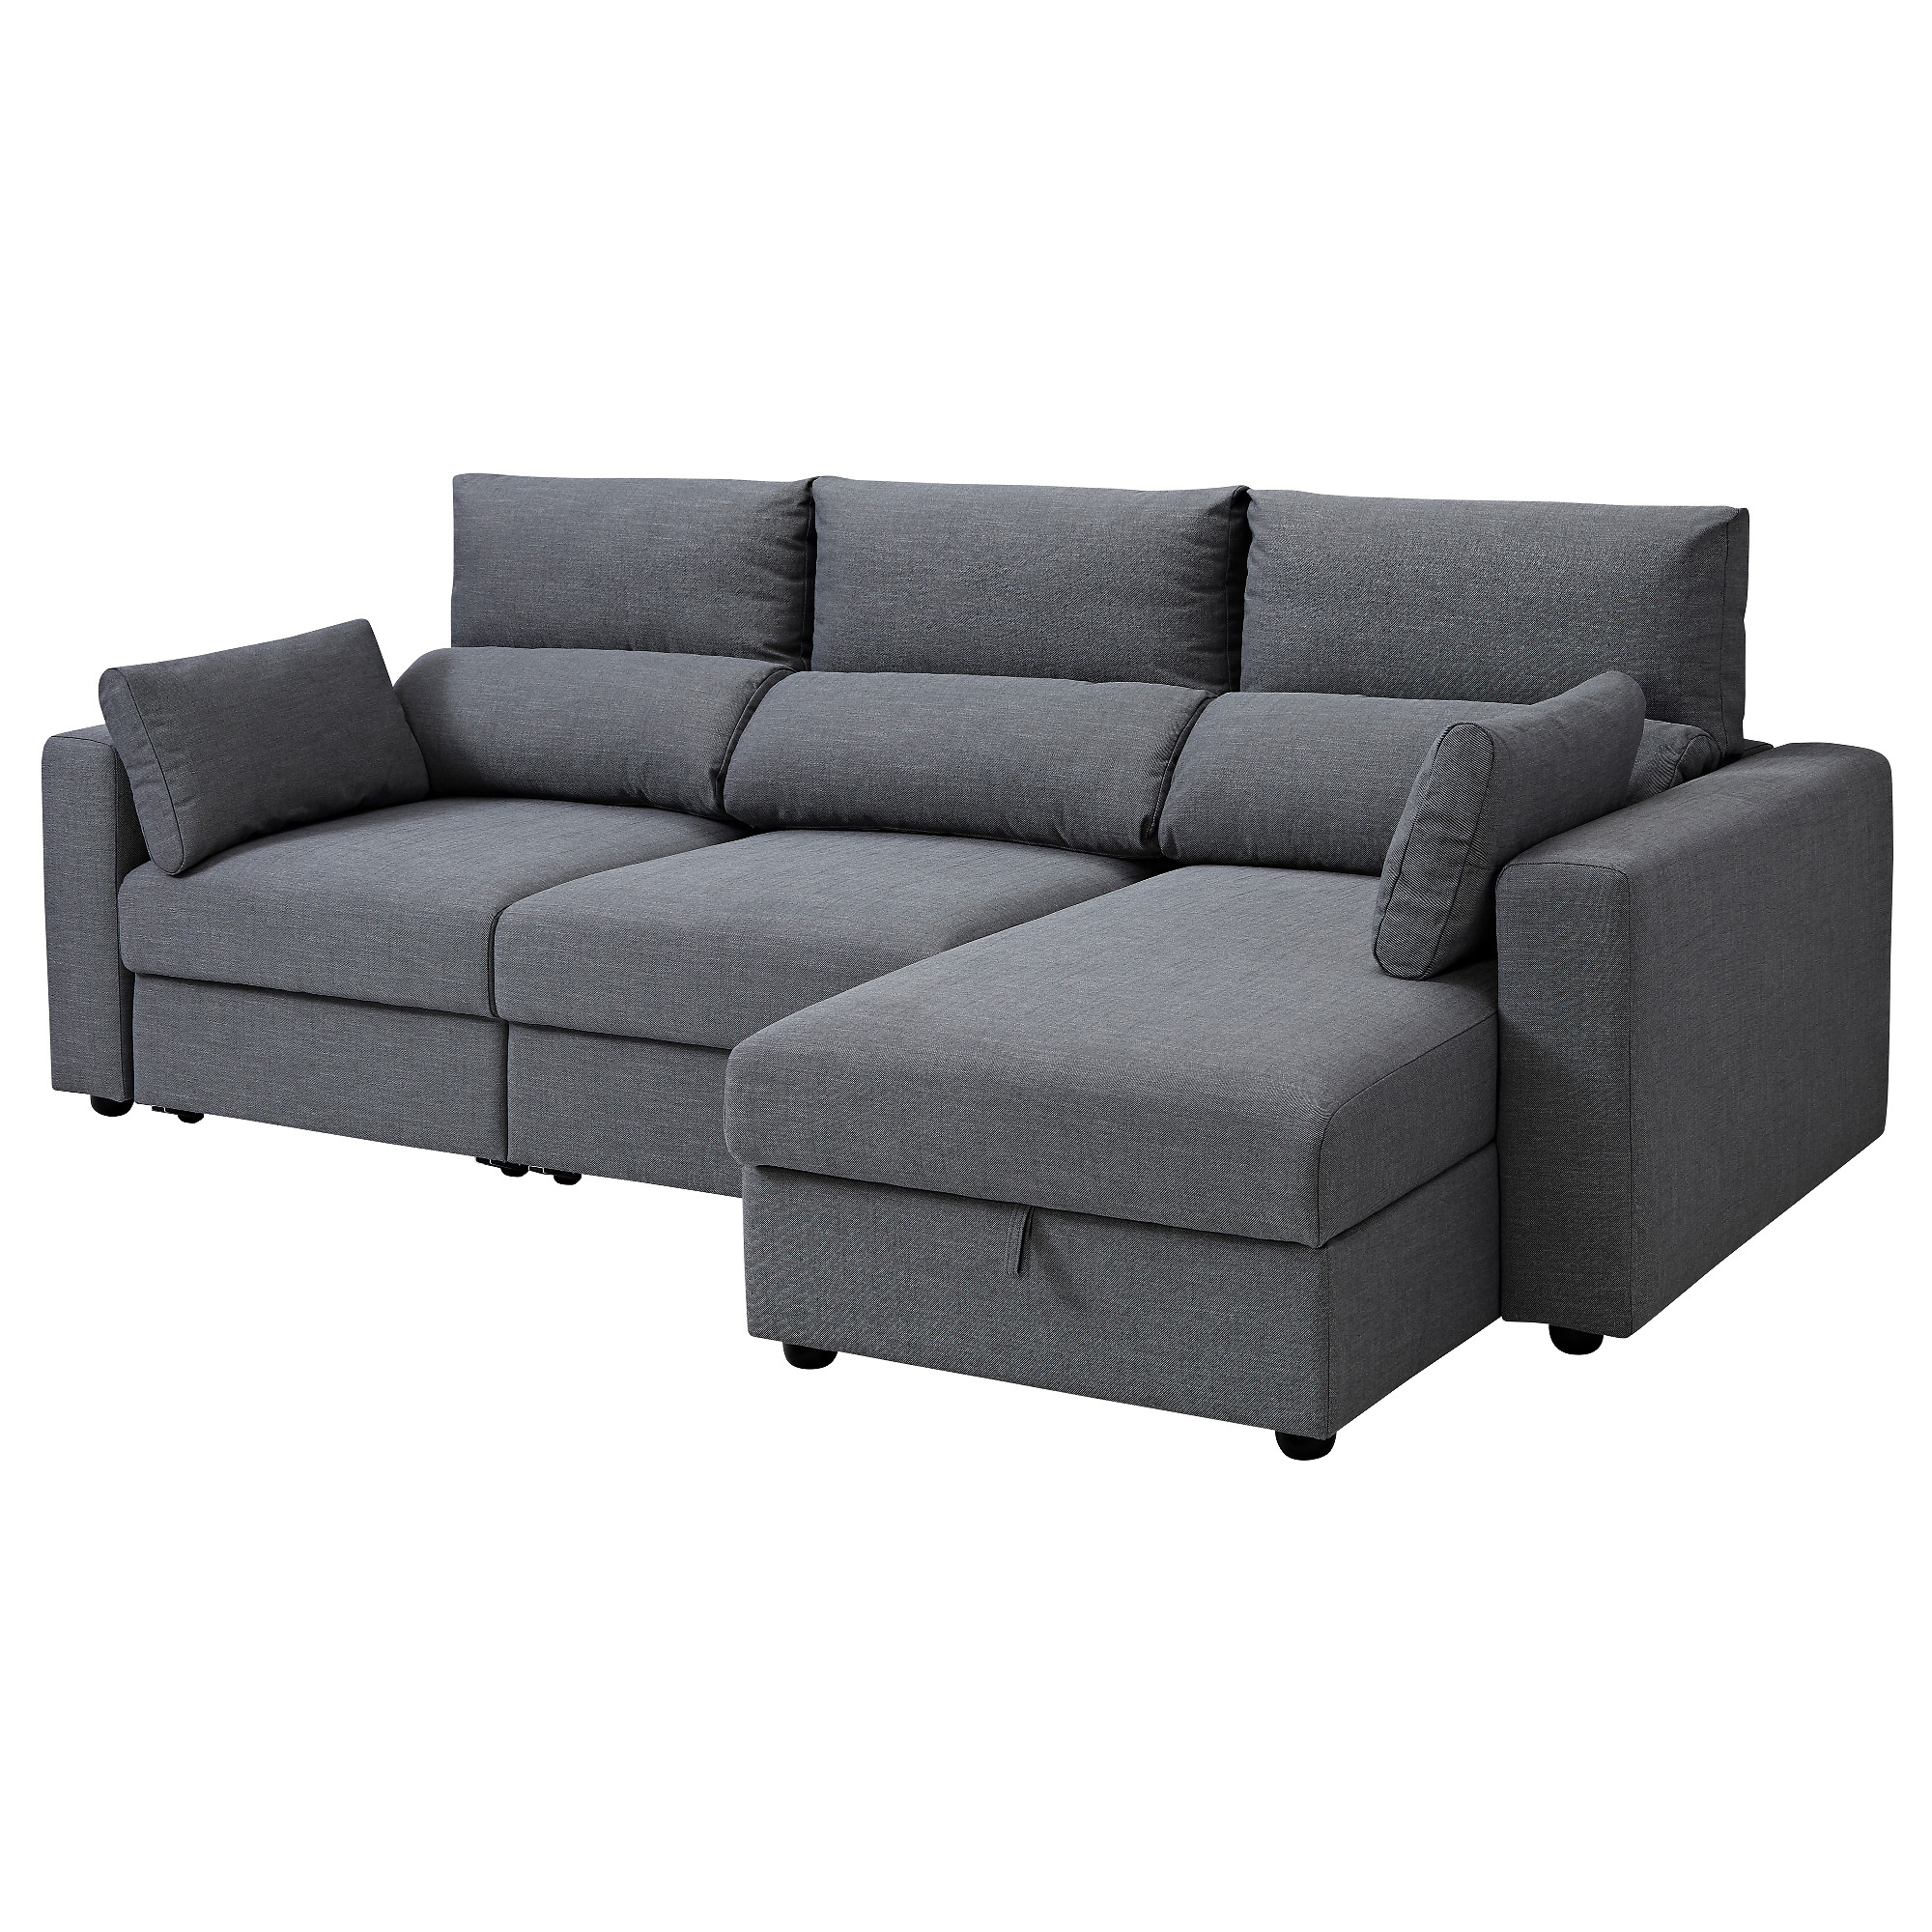 3 Seat Sofa With Chaise Longue Eskilstuna Nordvalla Dark Grey